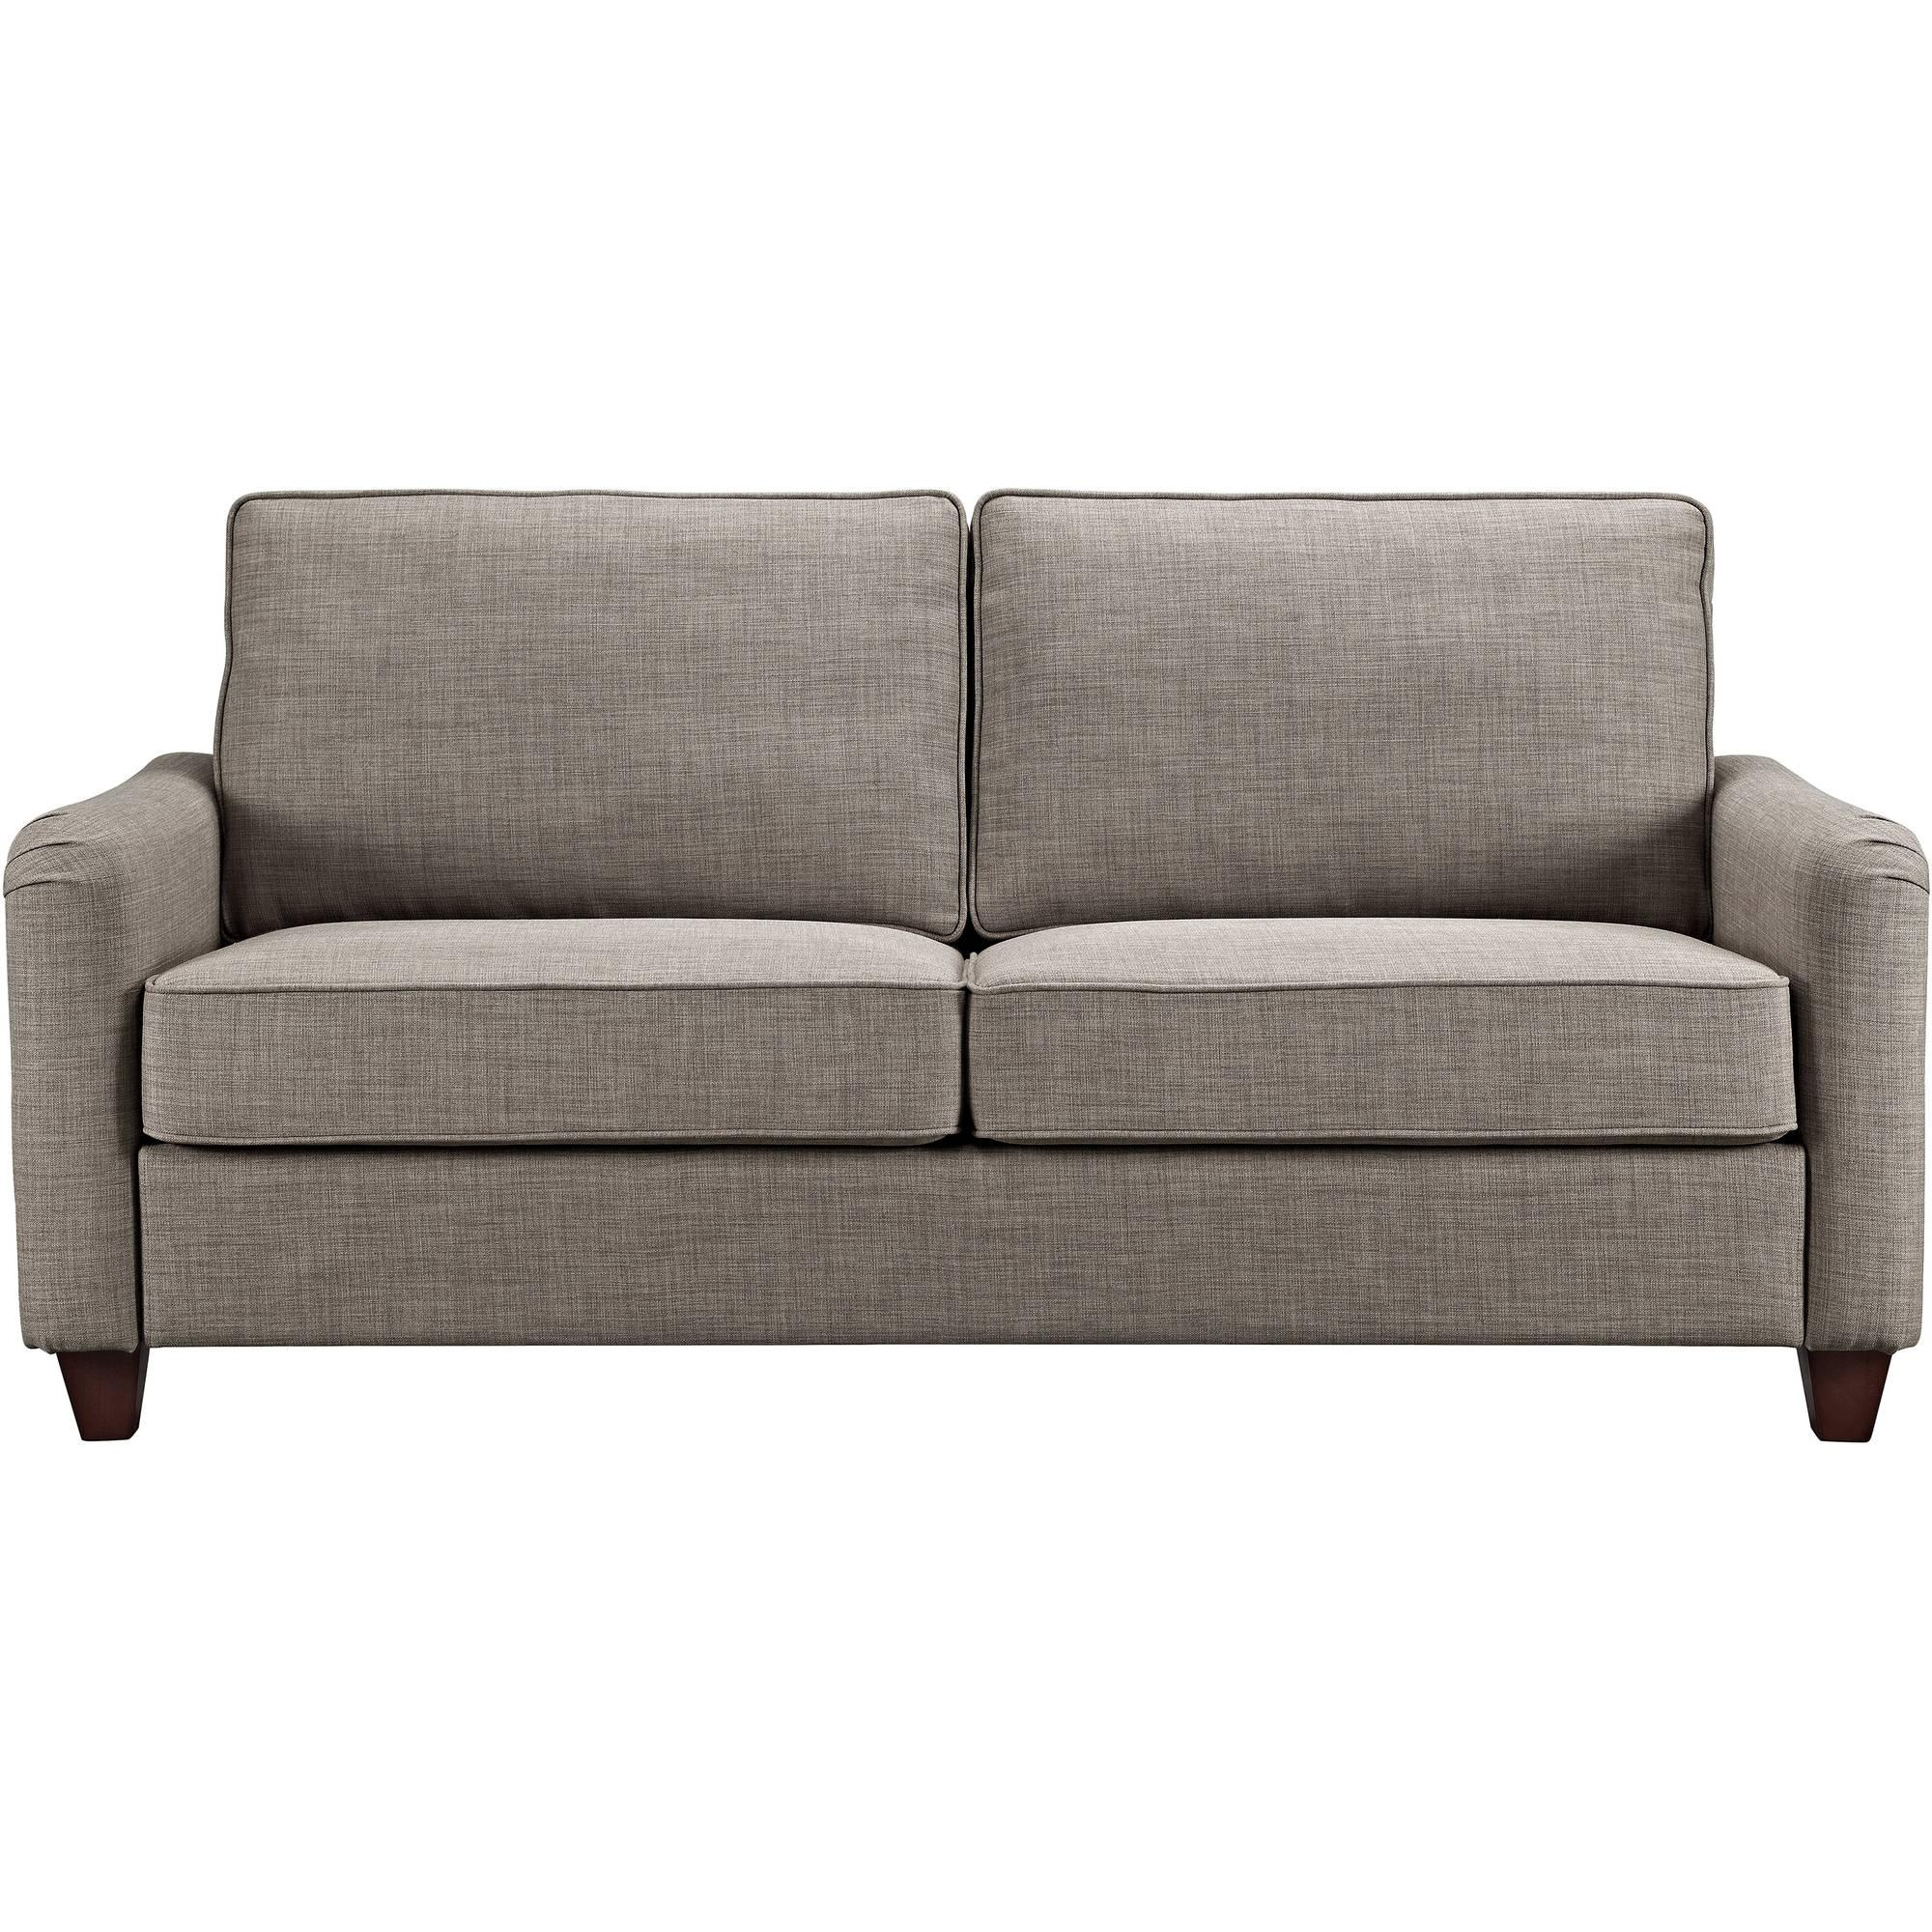 Living Room Furniture In Living Room Sofas (Image 12 of 20)